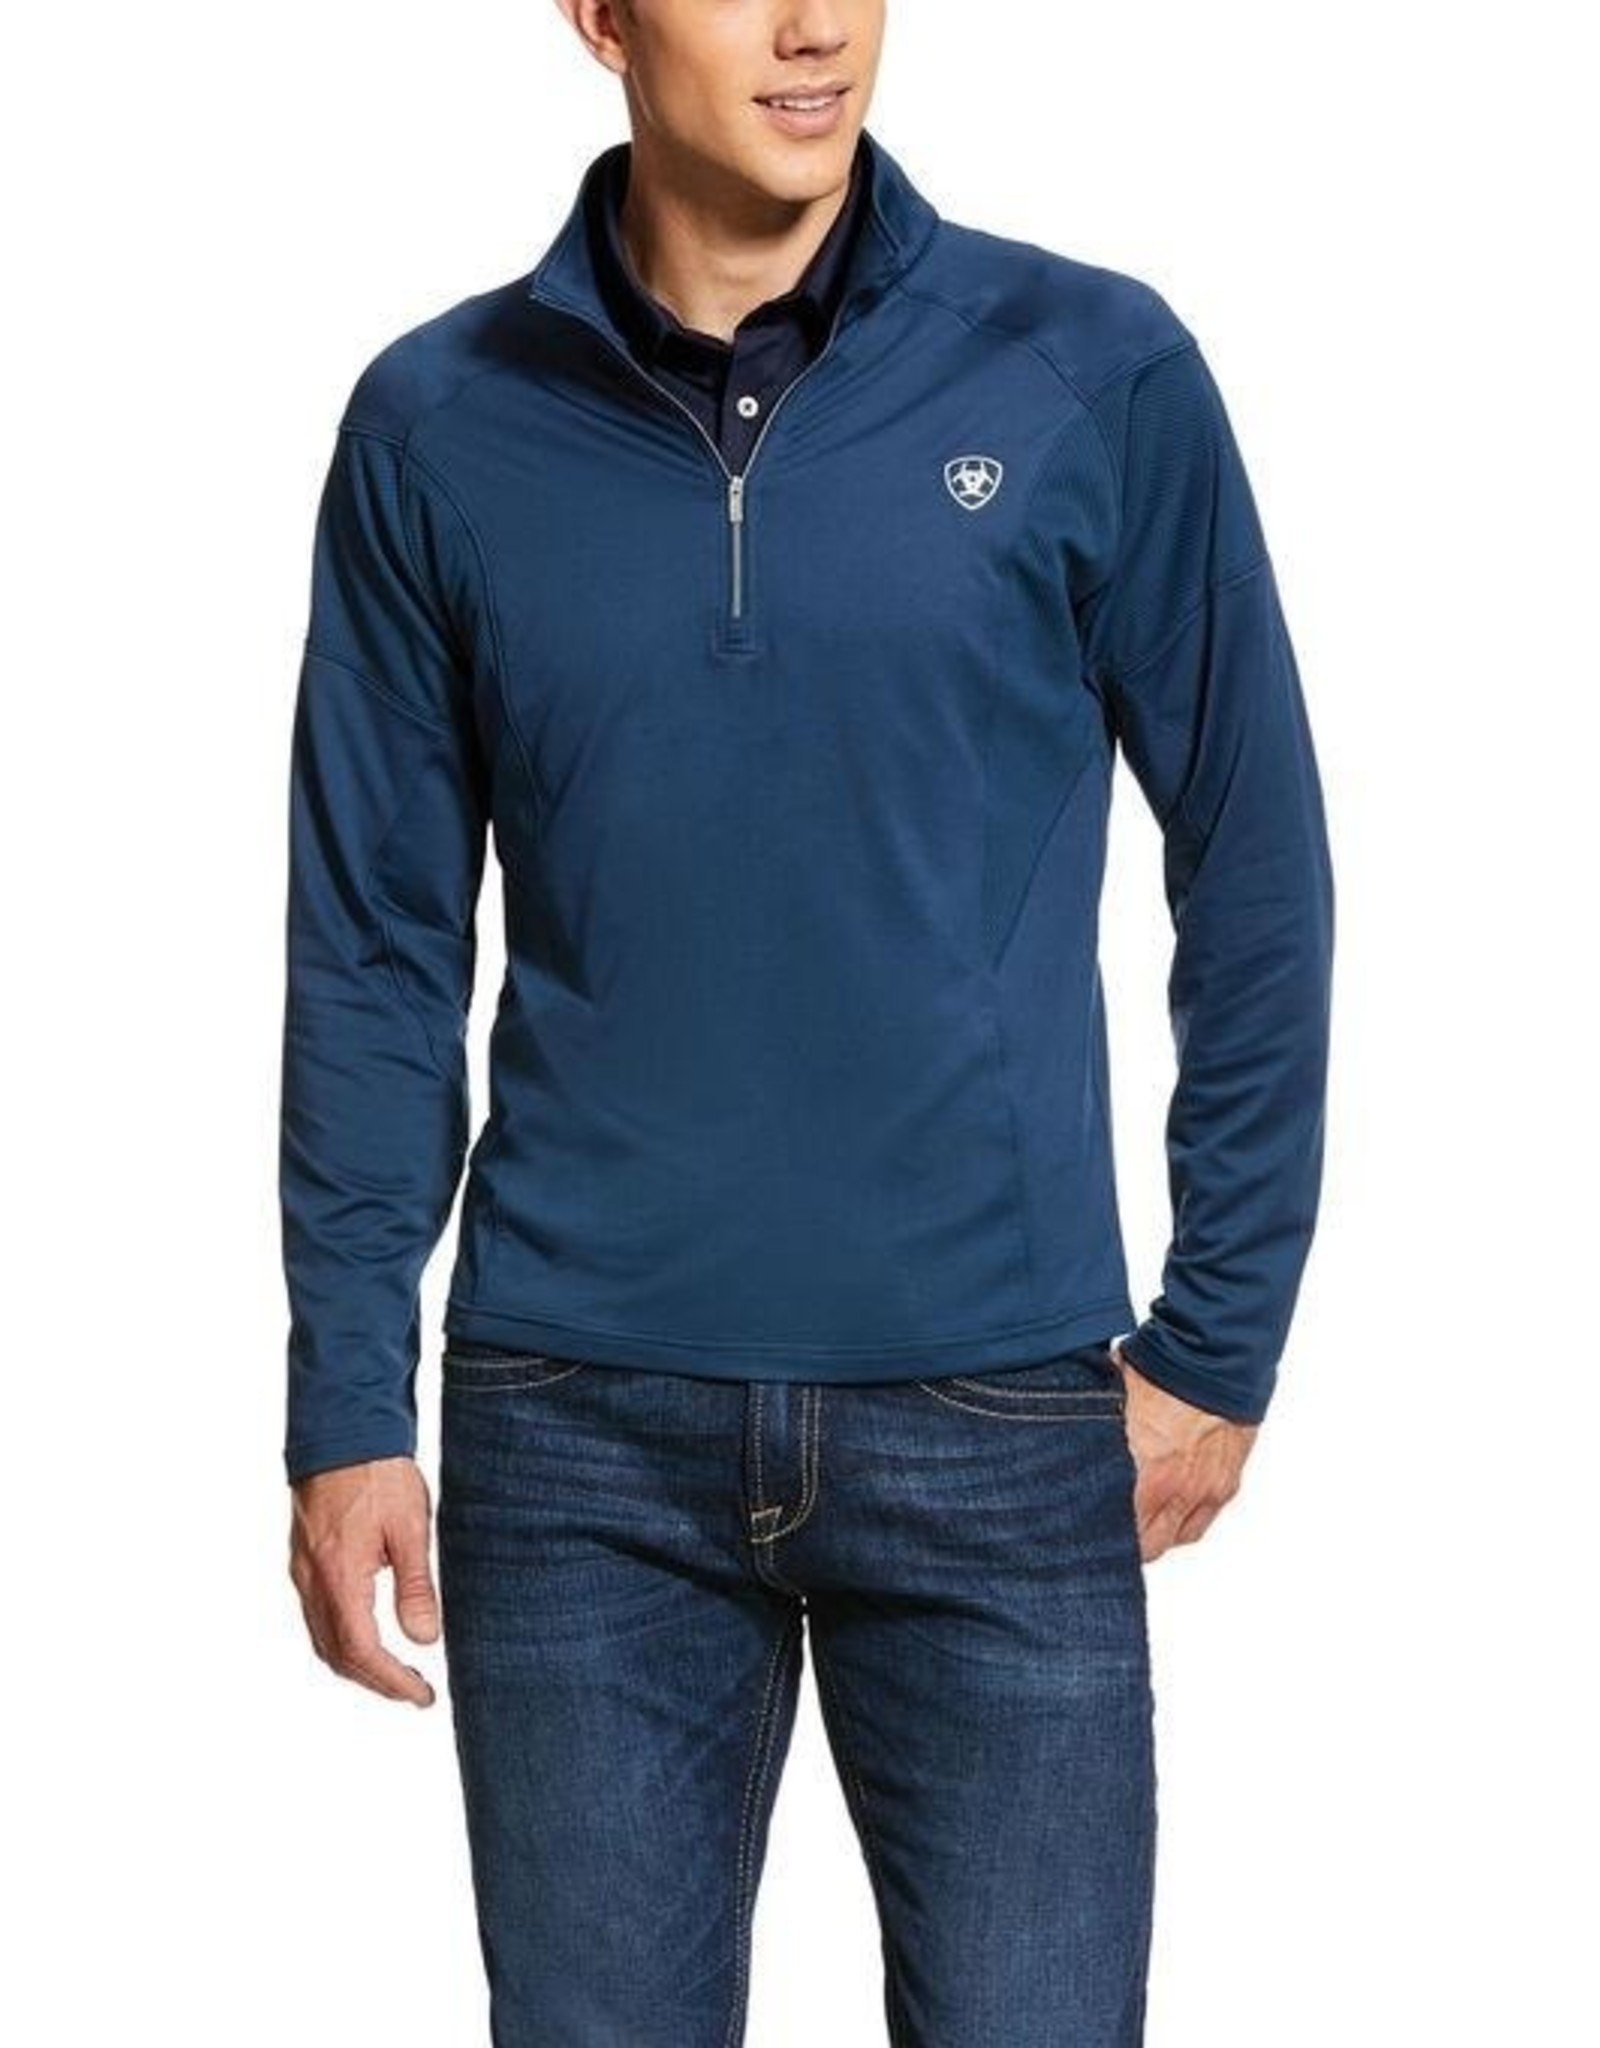 Ariat Men's 1/4 Zip Tolt Sweatshirt